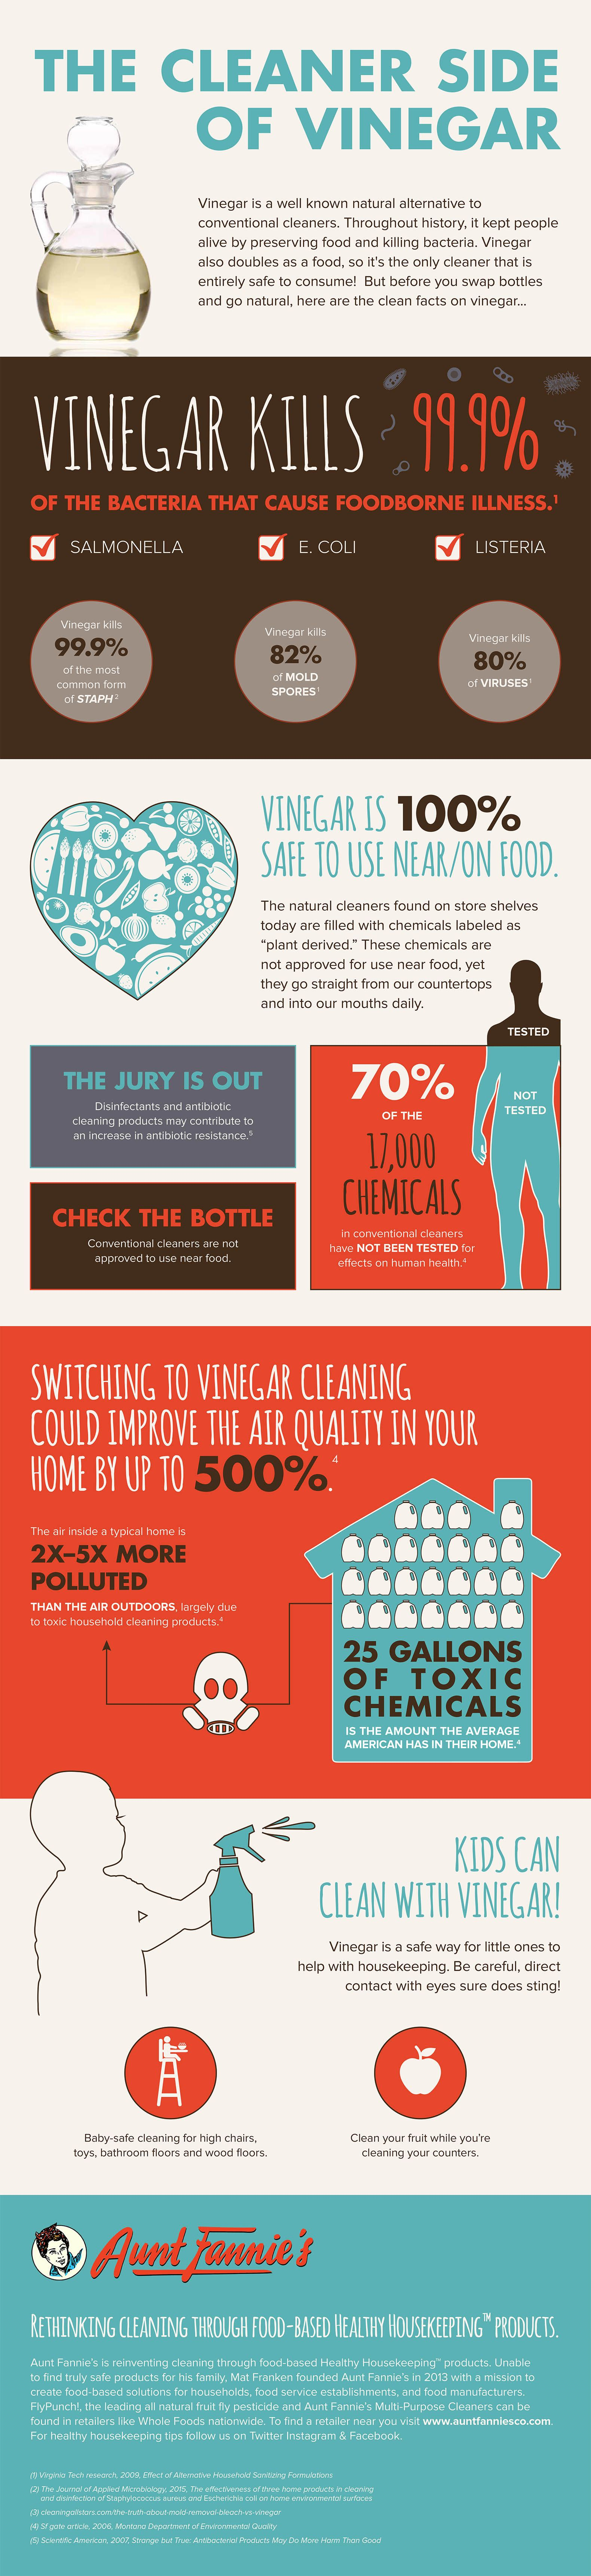 Infographic Why You Should Ditch The Cleaning Chemicals